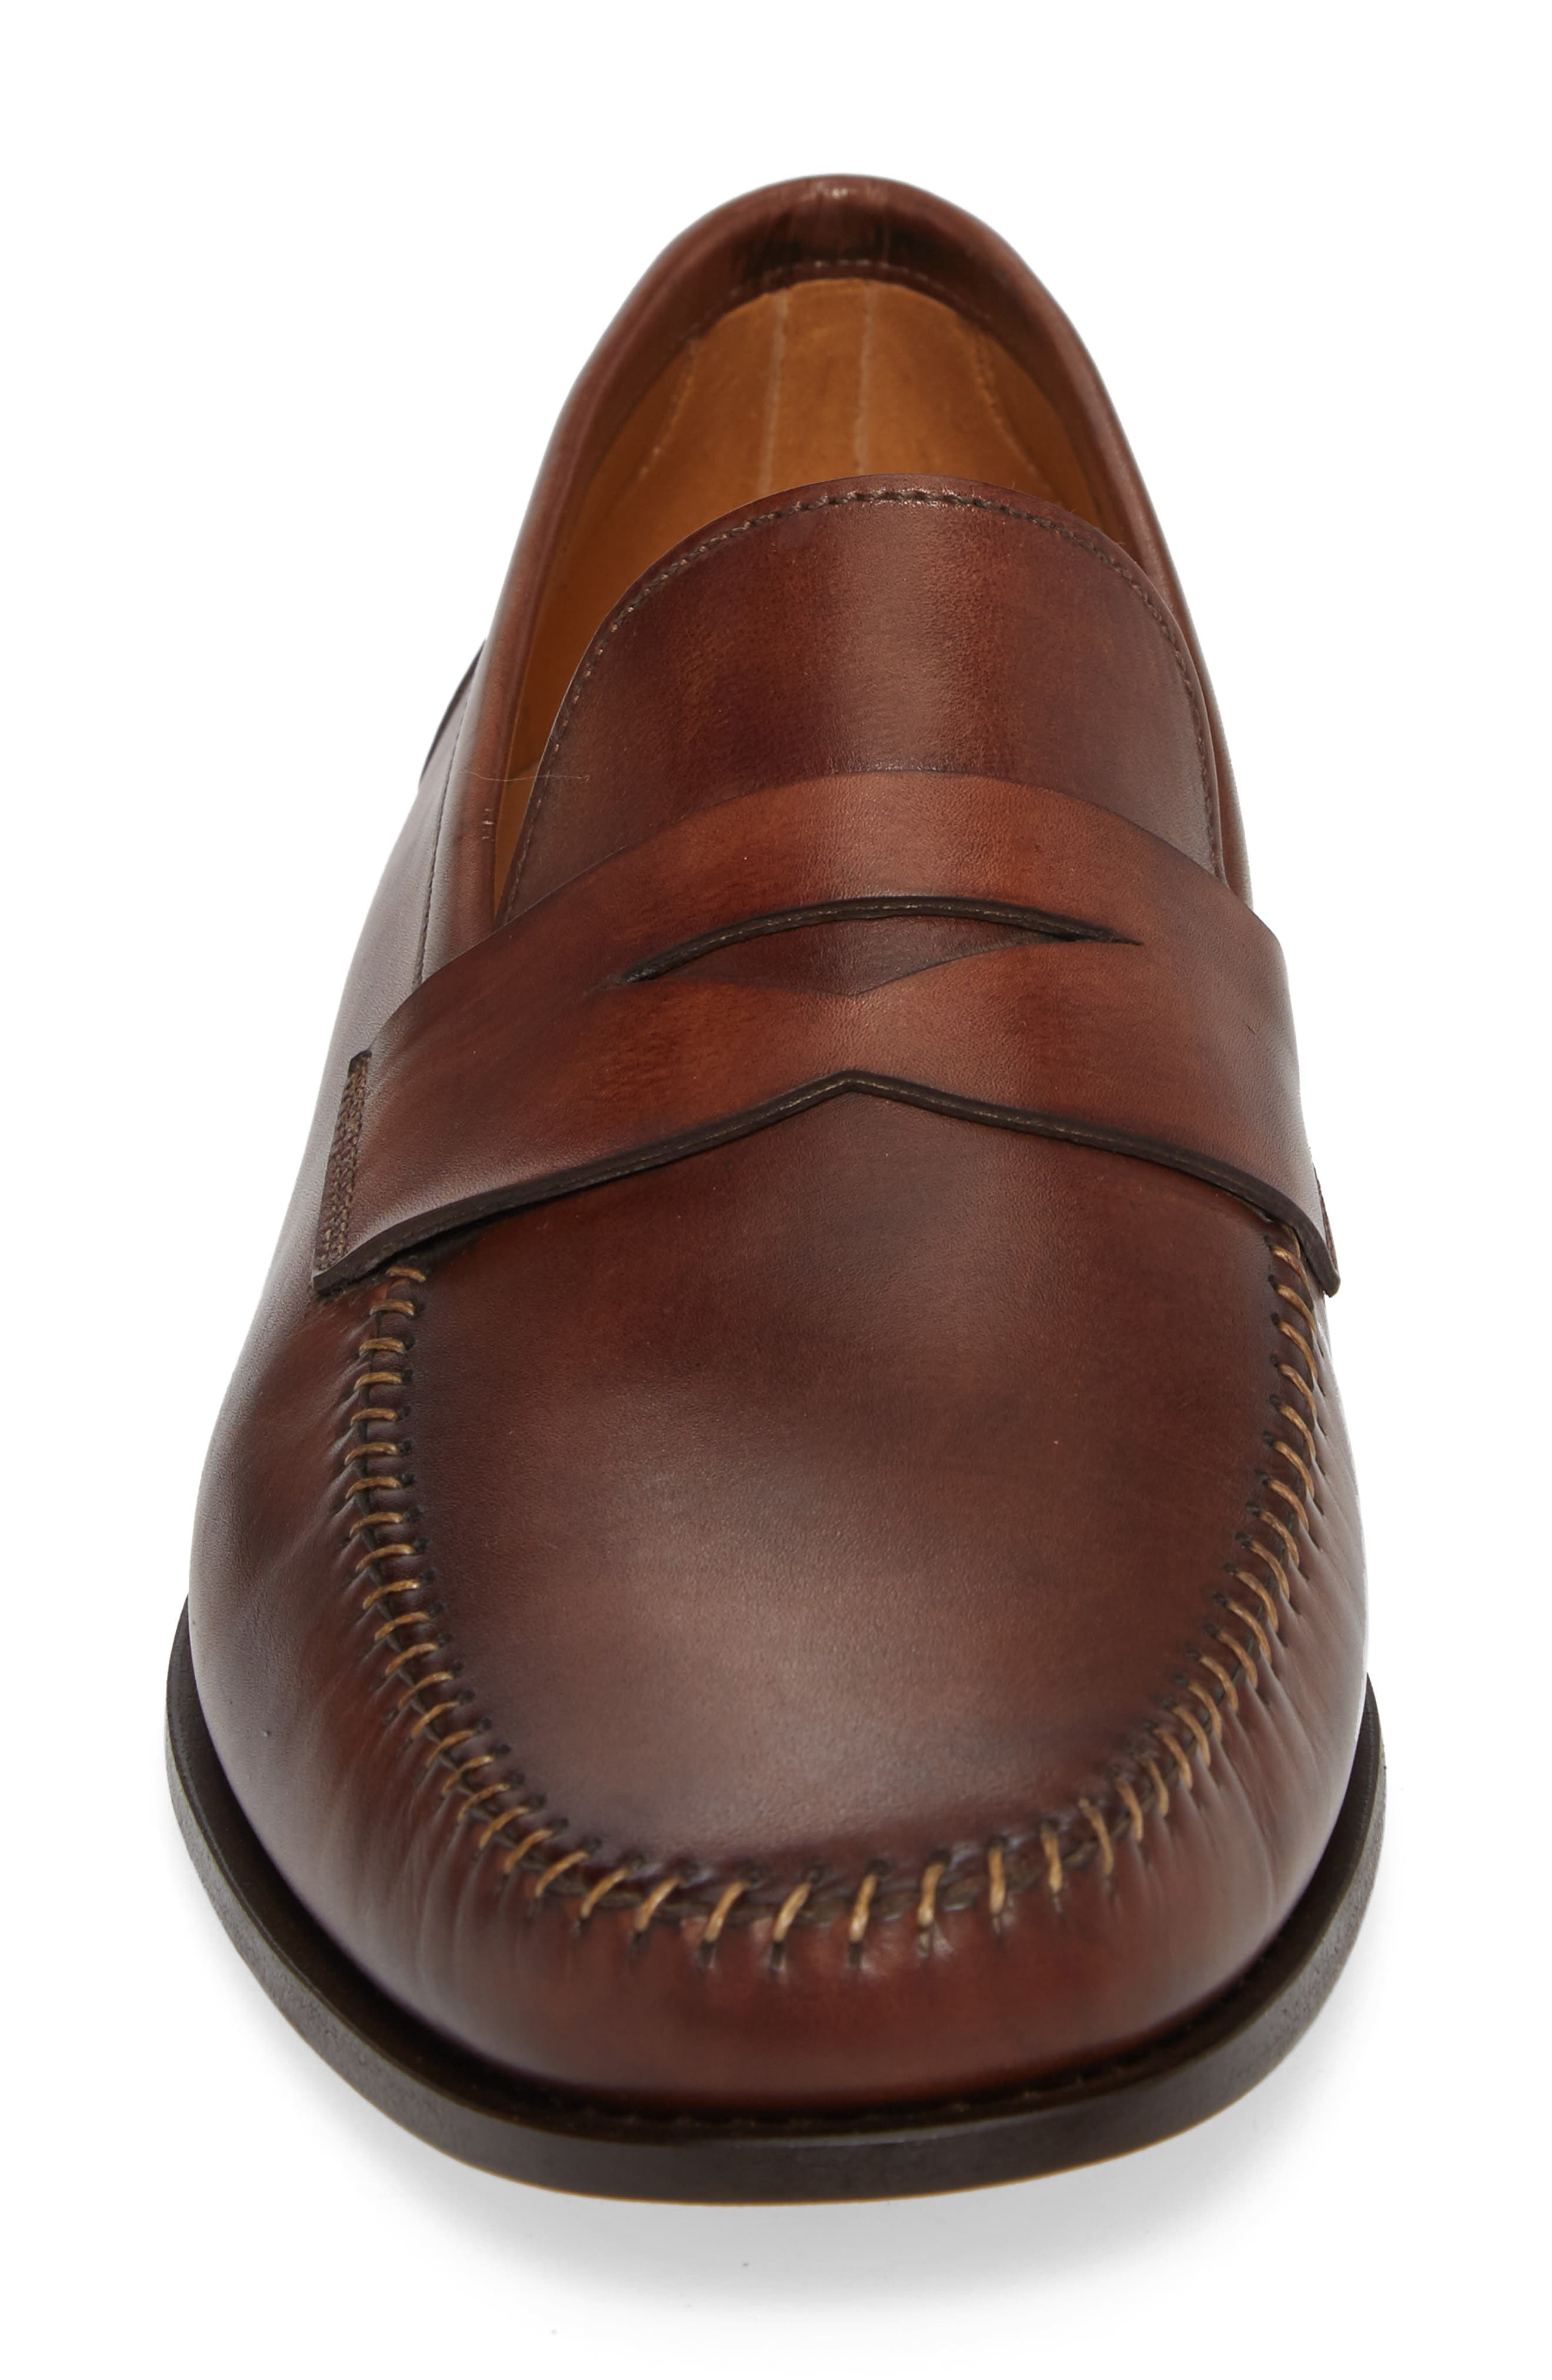 Ramos Moc Toe Penny Loafer,                             Alternate thumbnail 4, color,                             Brown Leather